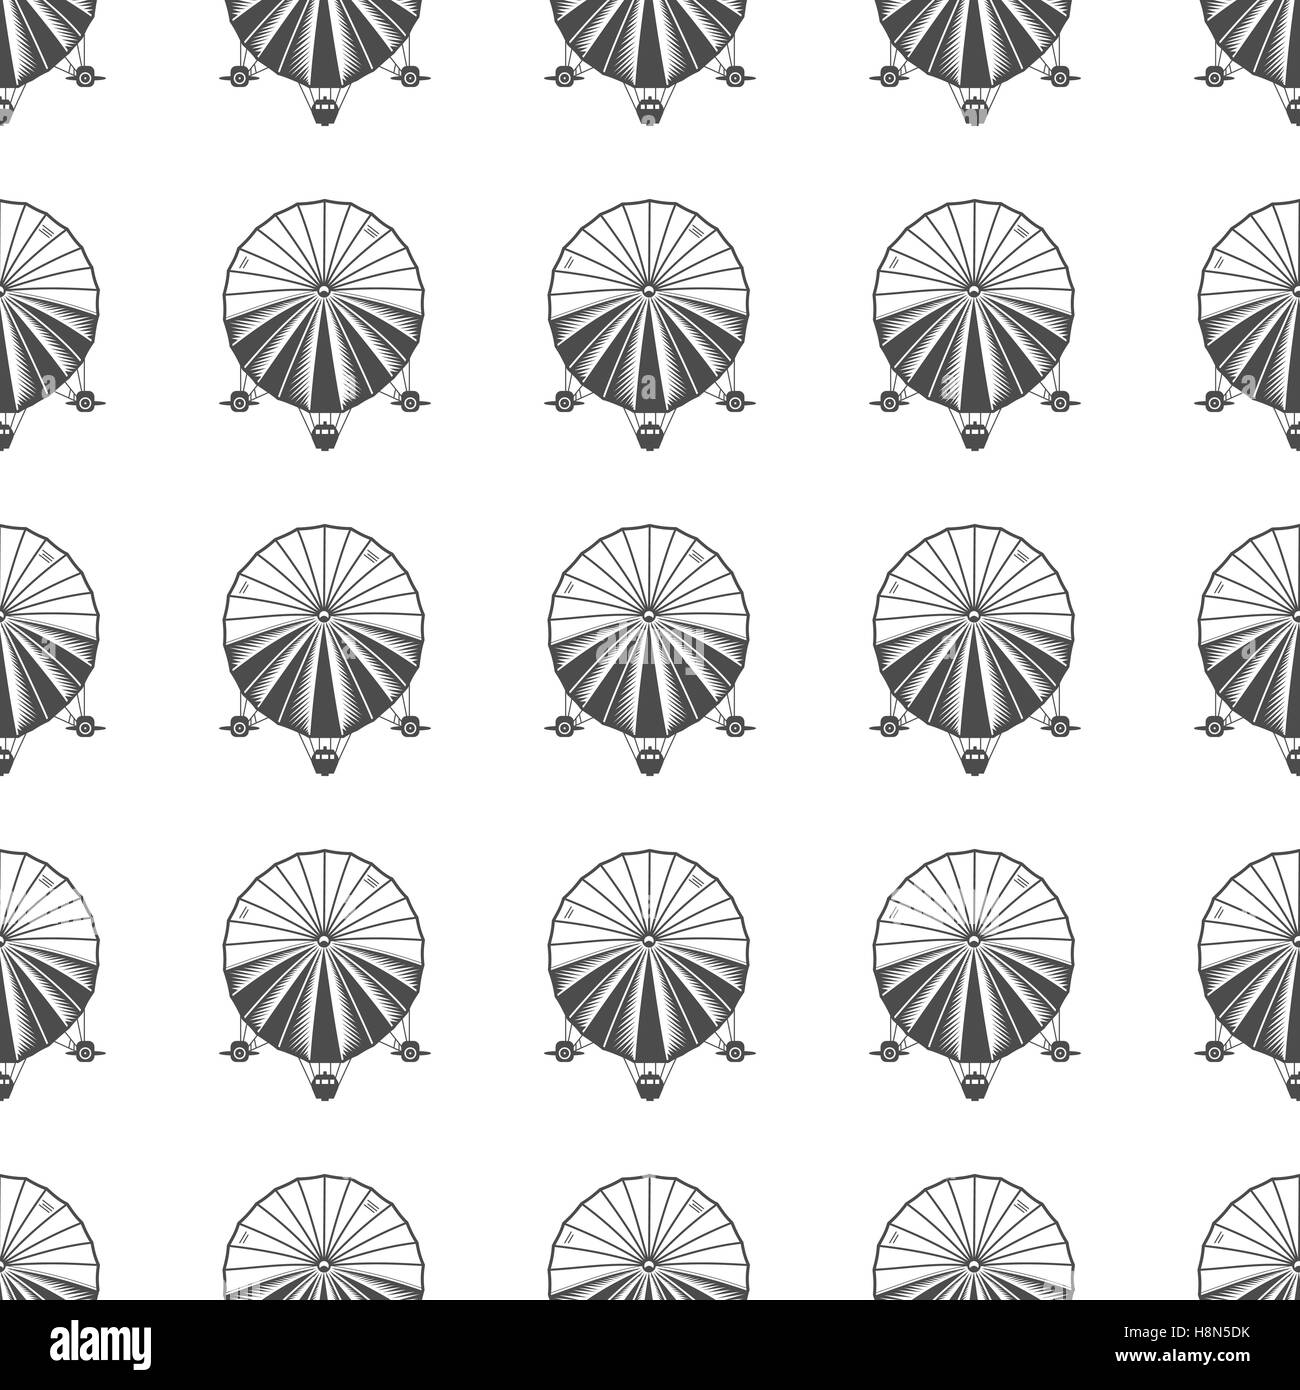 Vintage airship seamless pattern. Retro Dirigible wallpaper design. Old sketching style. Vector - Stock Image